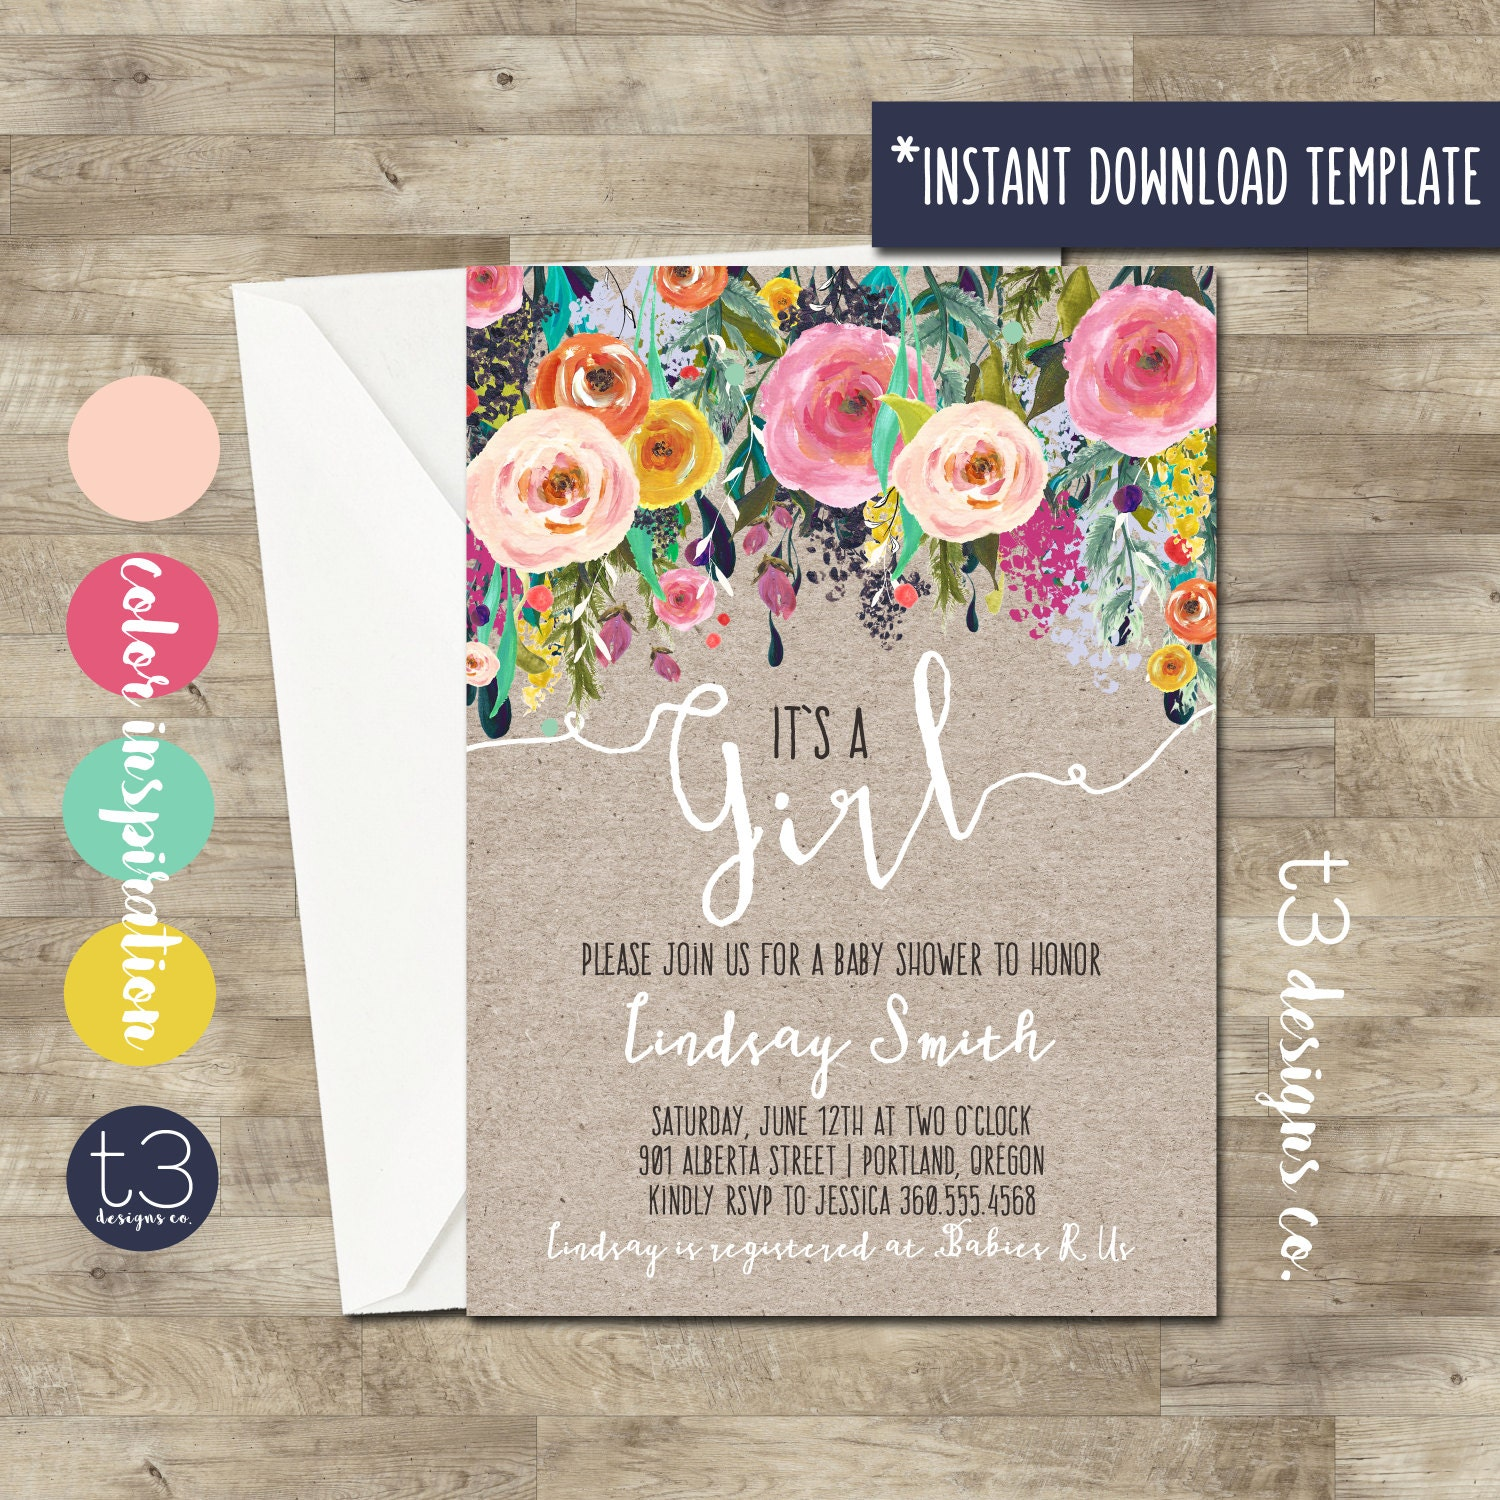 Instant Whimsical Baby Girl Shower Invitation diy pdf girl baby